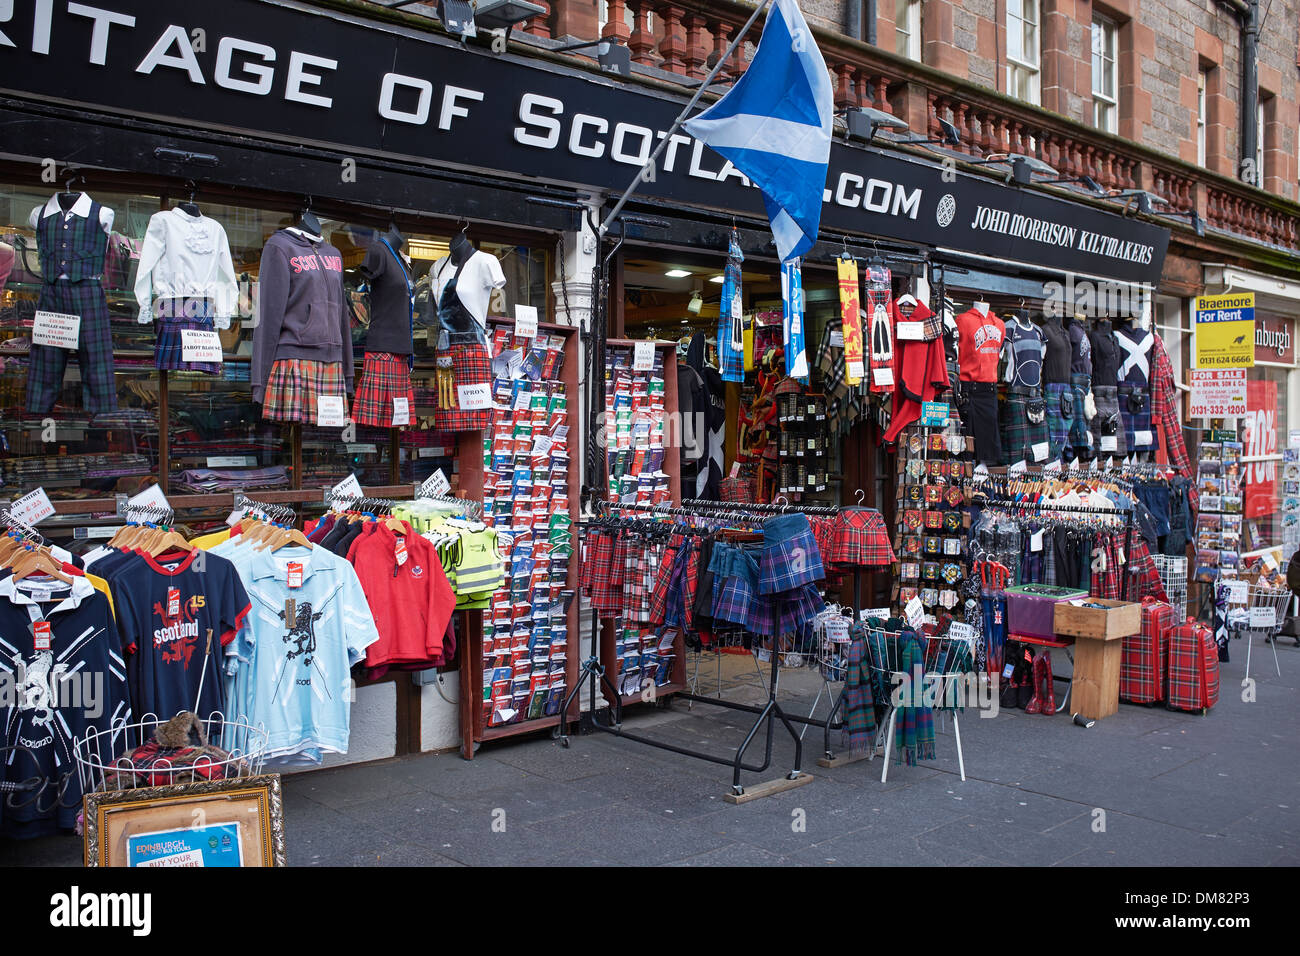 A tourist shop in Edinburgh city centre selling tartan and Scottish memorabilia - Stock Image